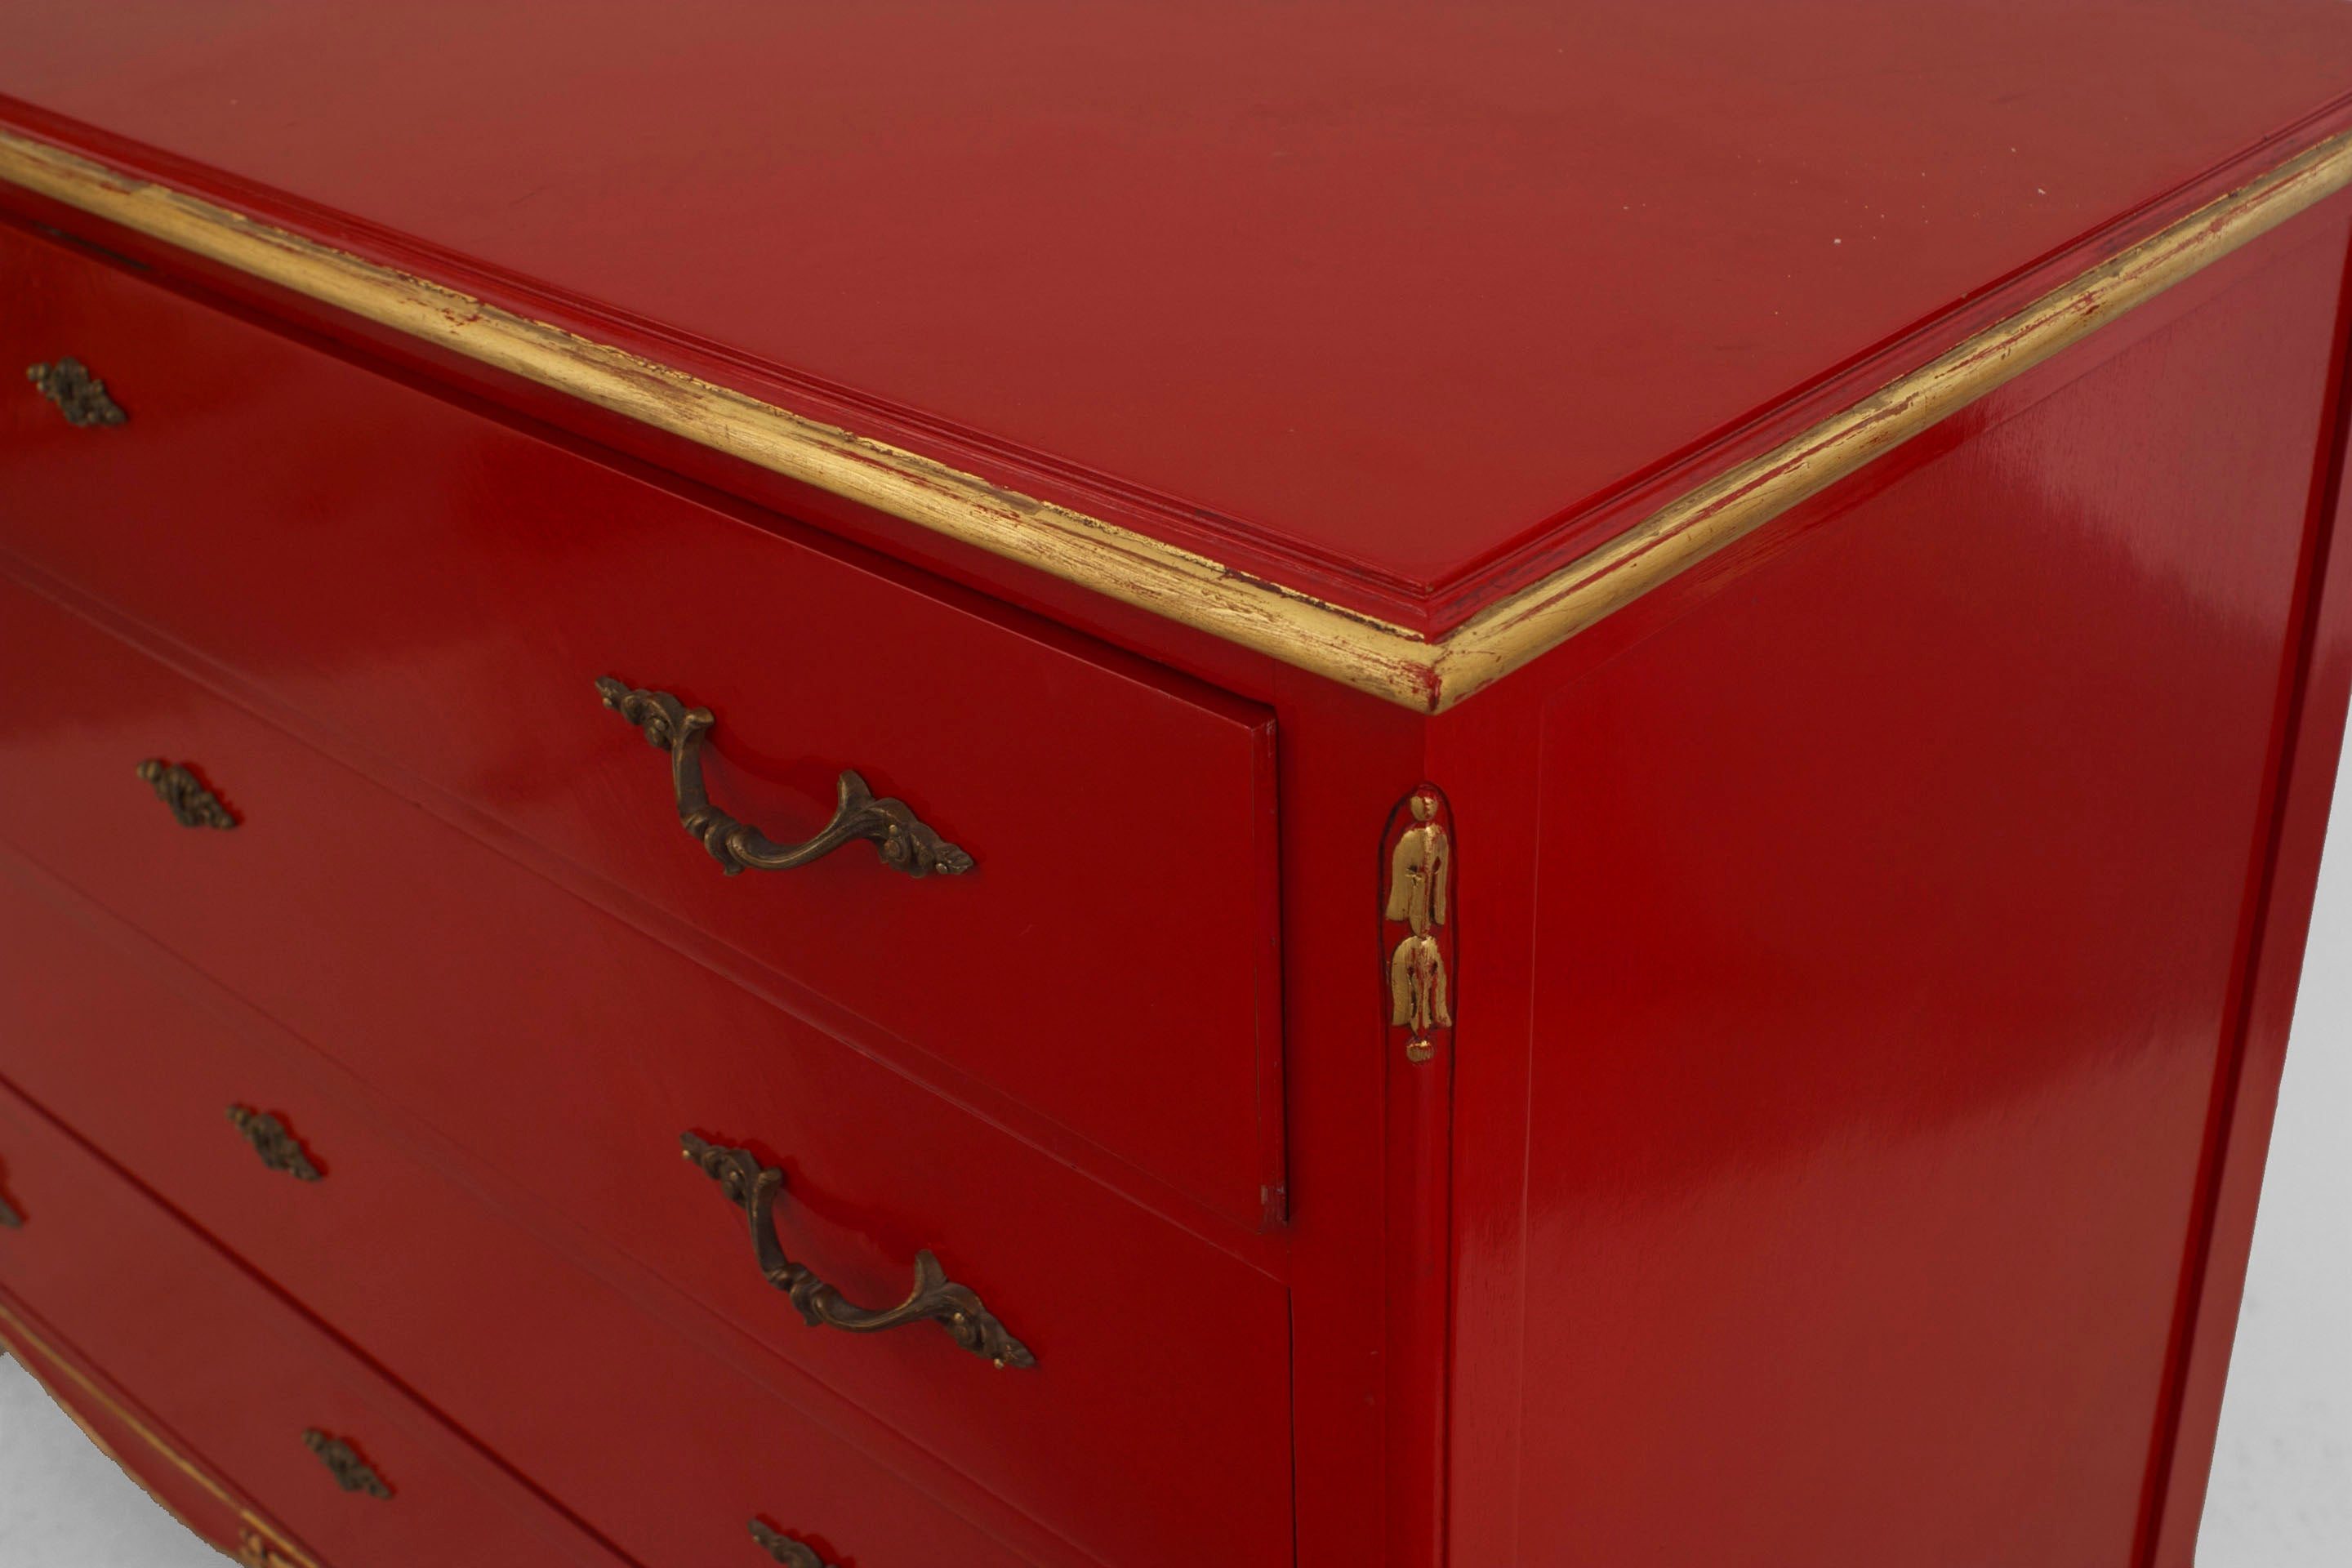 org including incredible chest source thereachmux of design painted juicy trends ideas mocca bedroom fruits drawer island drawers red ikea dresser